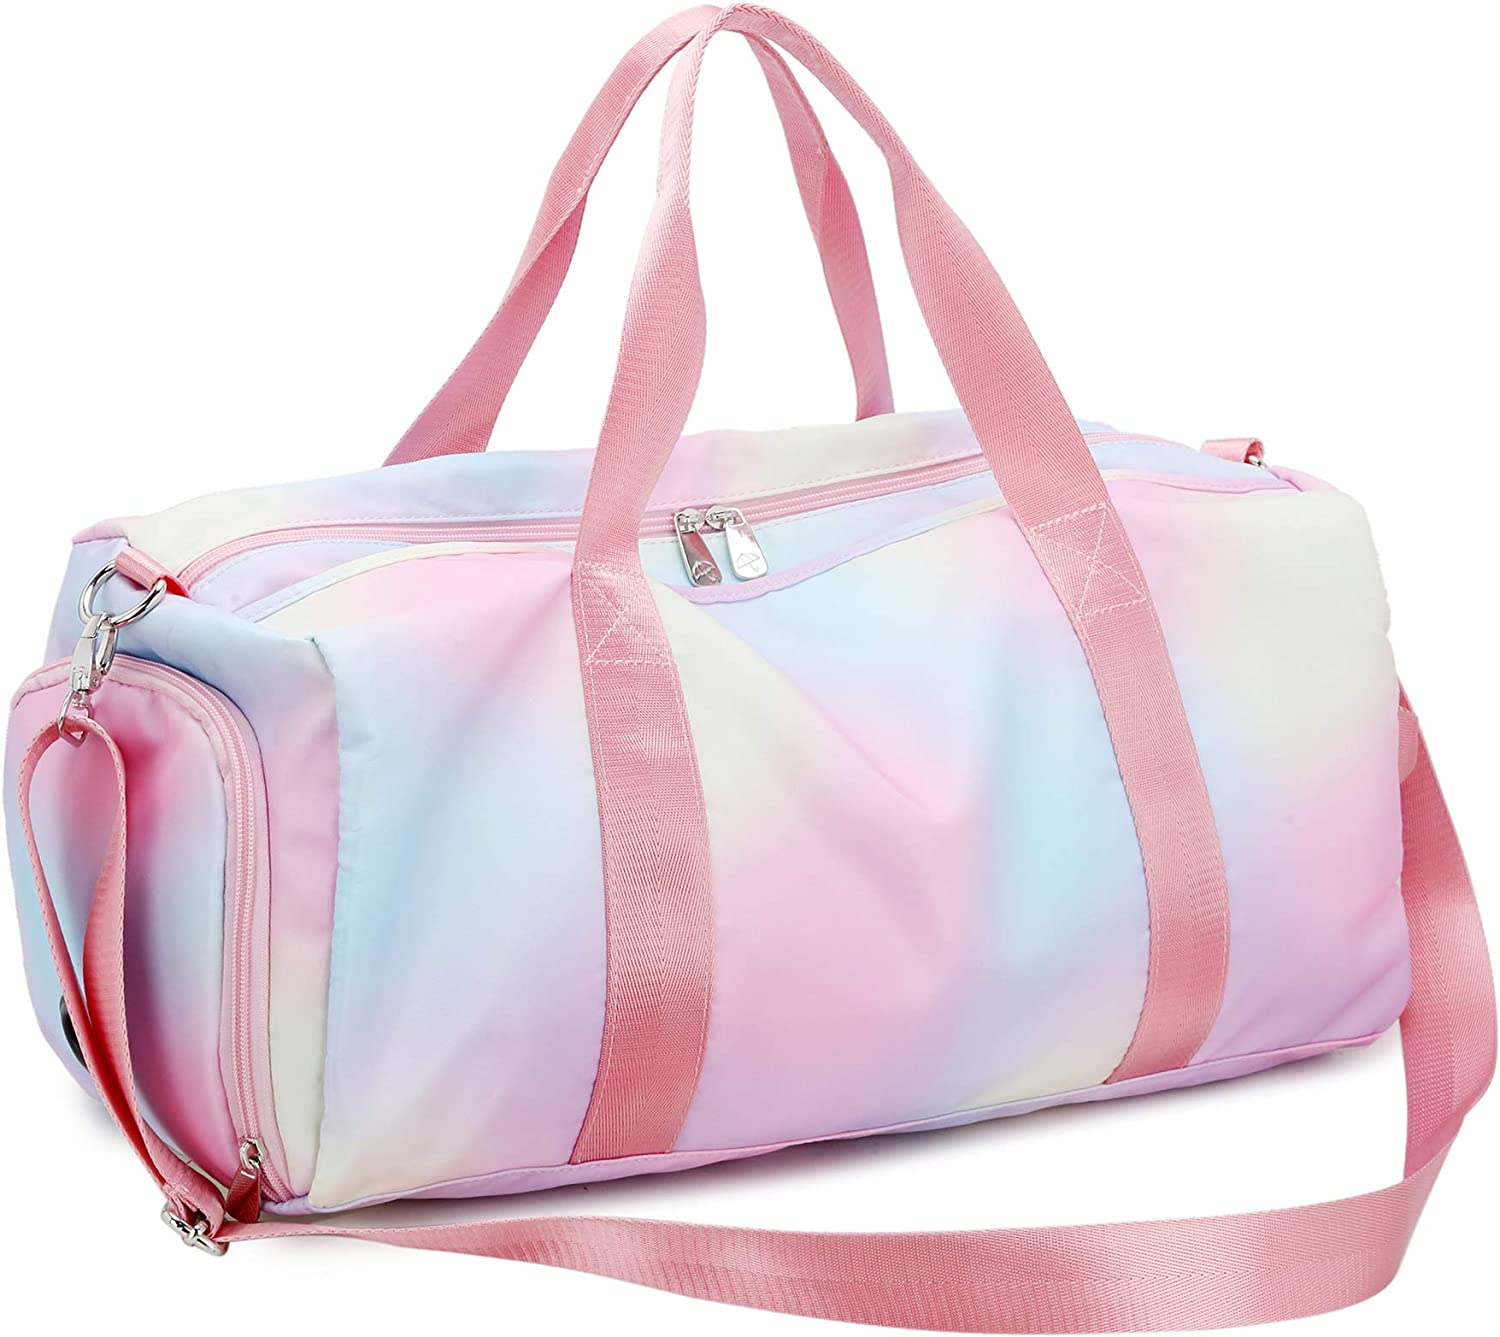 Sport Gym Bag Large Travel Duffel Bag with Shoe Compartment Wet Pocket Pink